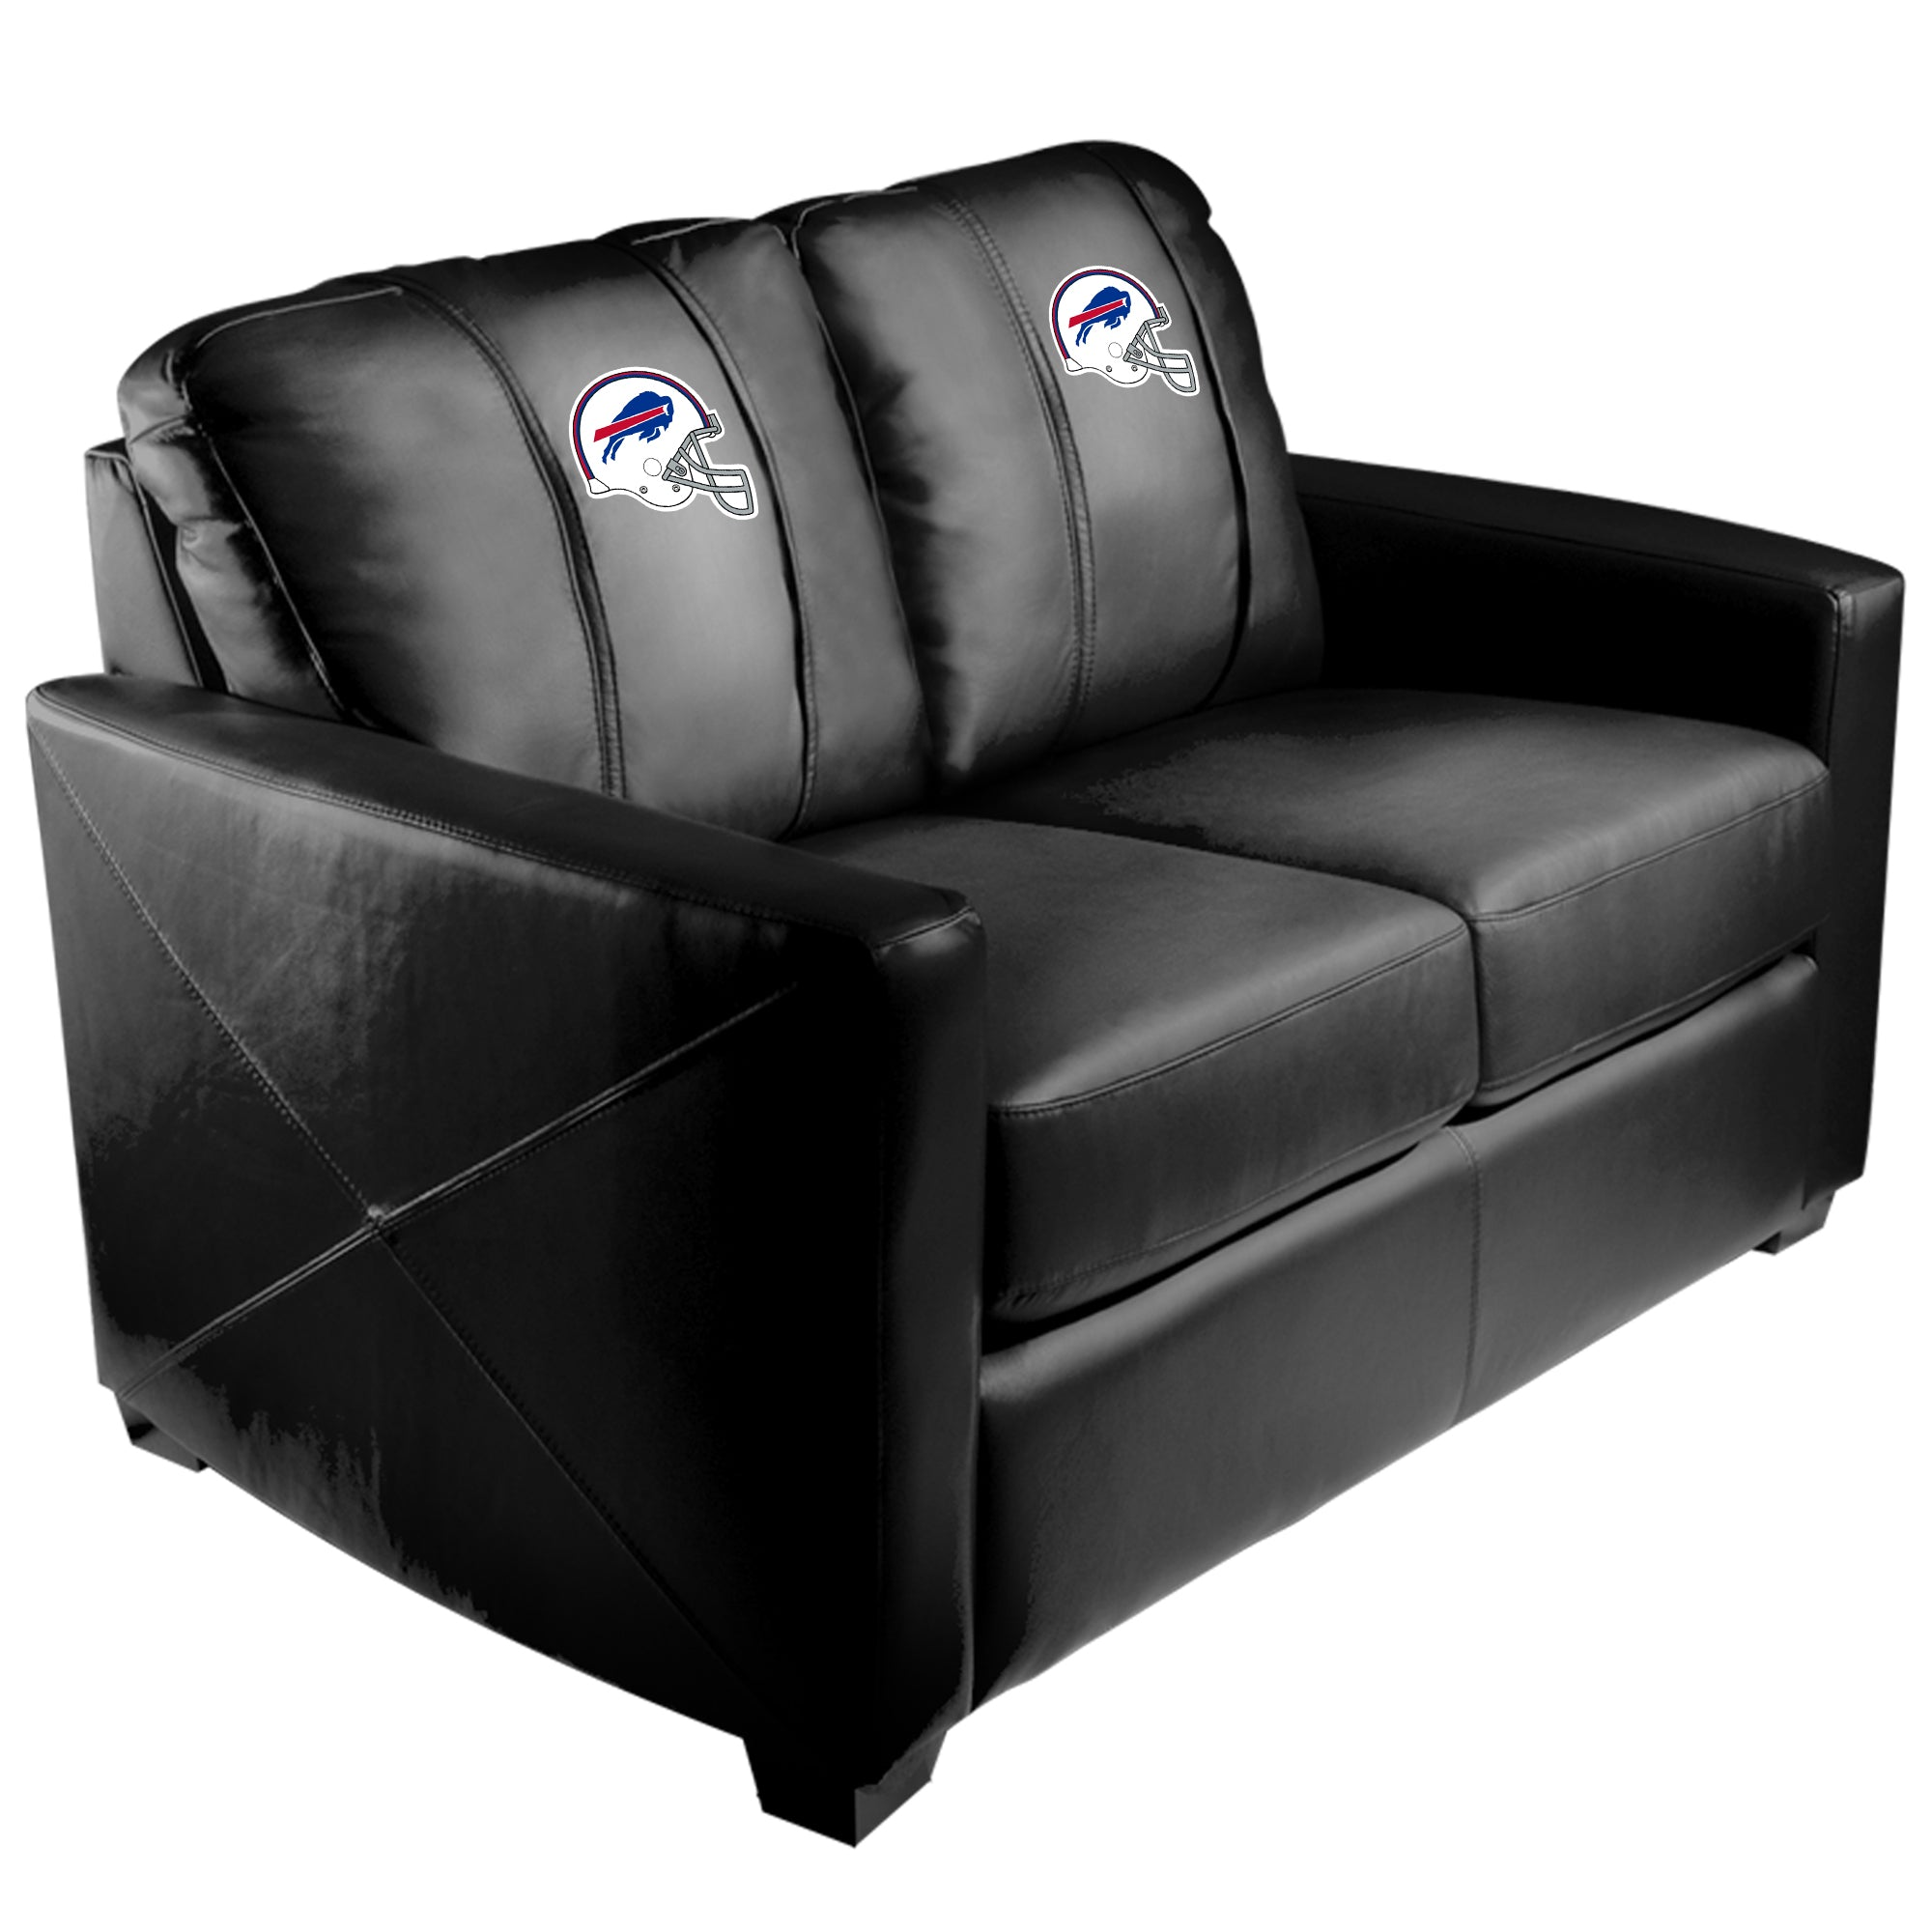 Silver Loveseat with  Buffalo Bills Helmet Logo